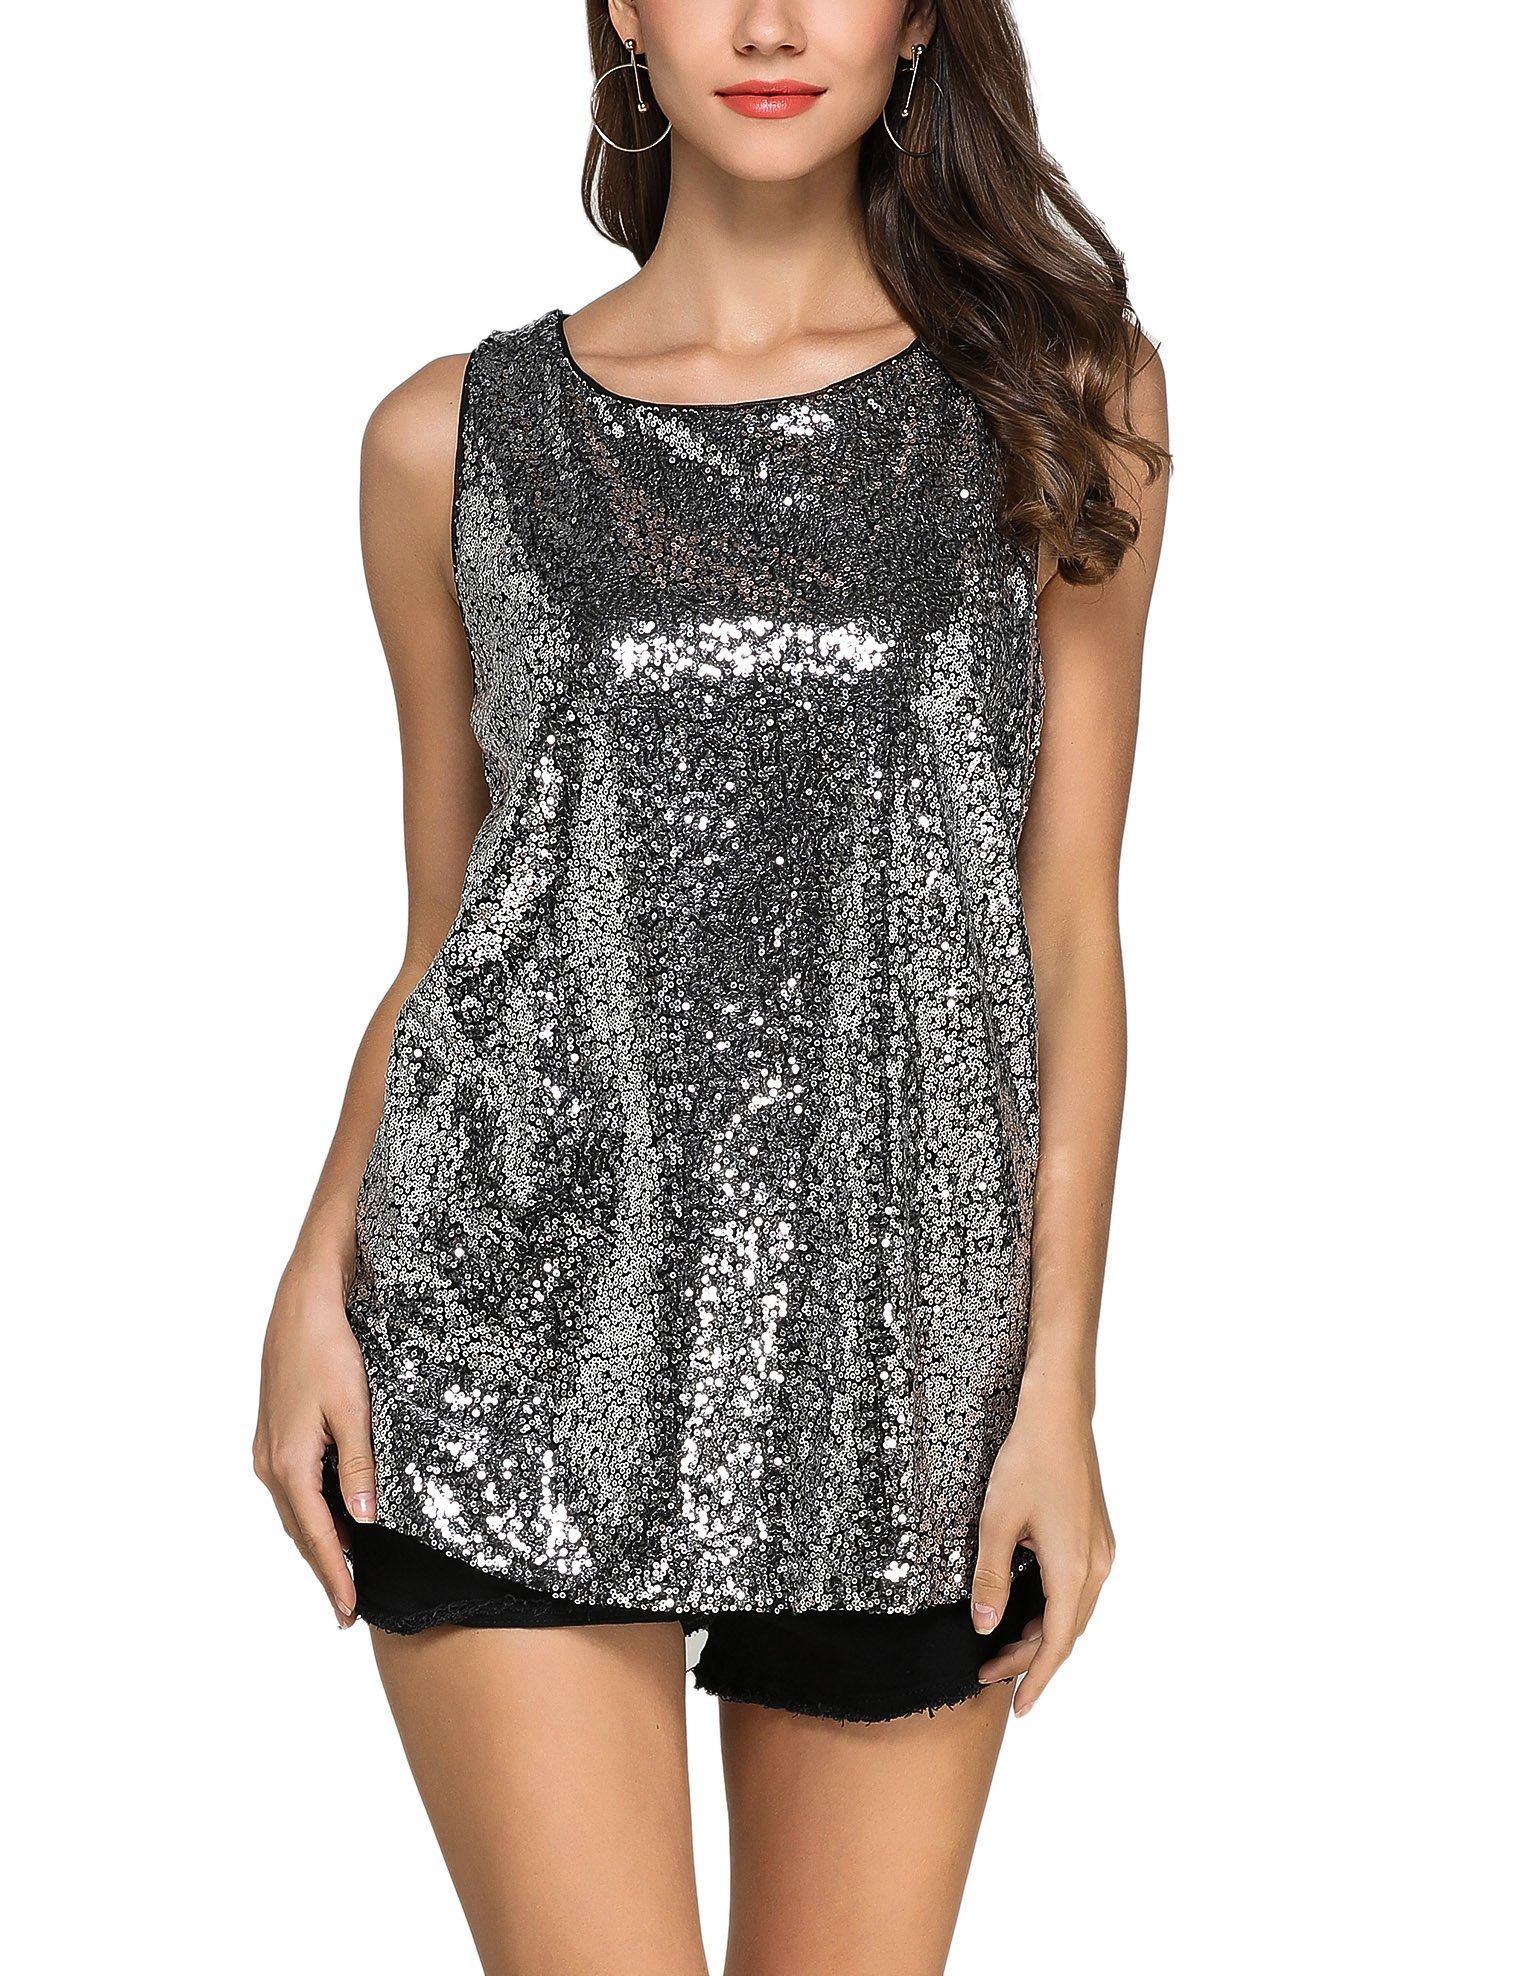 GUANYY Women's Sleeveless Sparkle Shimmer Camisole Vest Sequin Tank Tops (Silver, XX-Large)